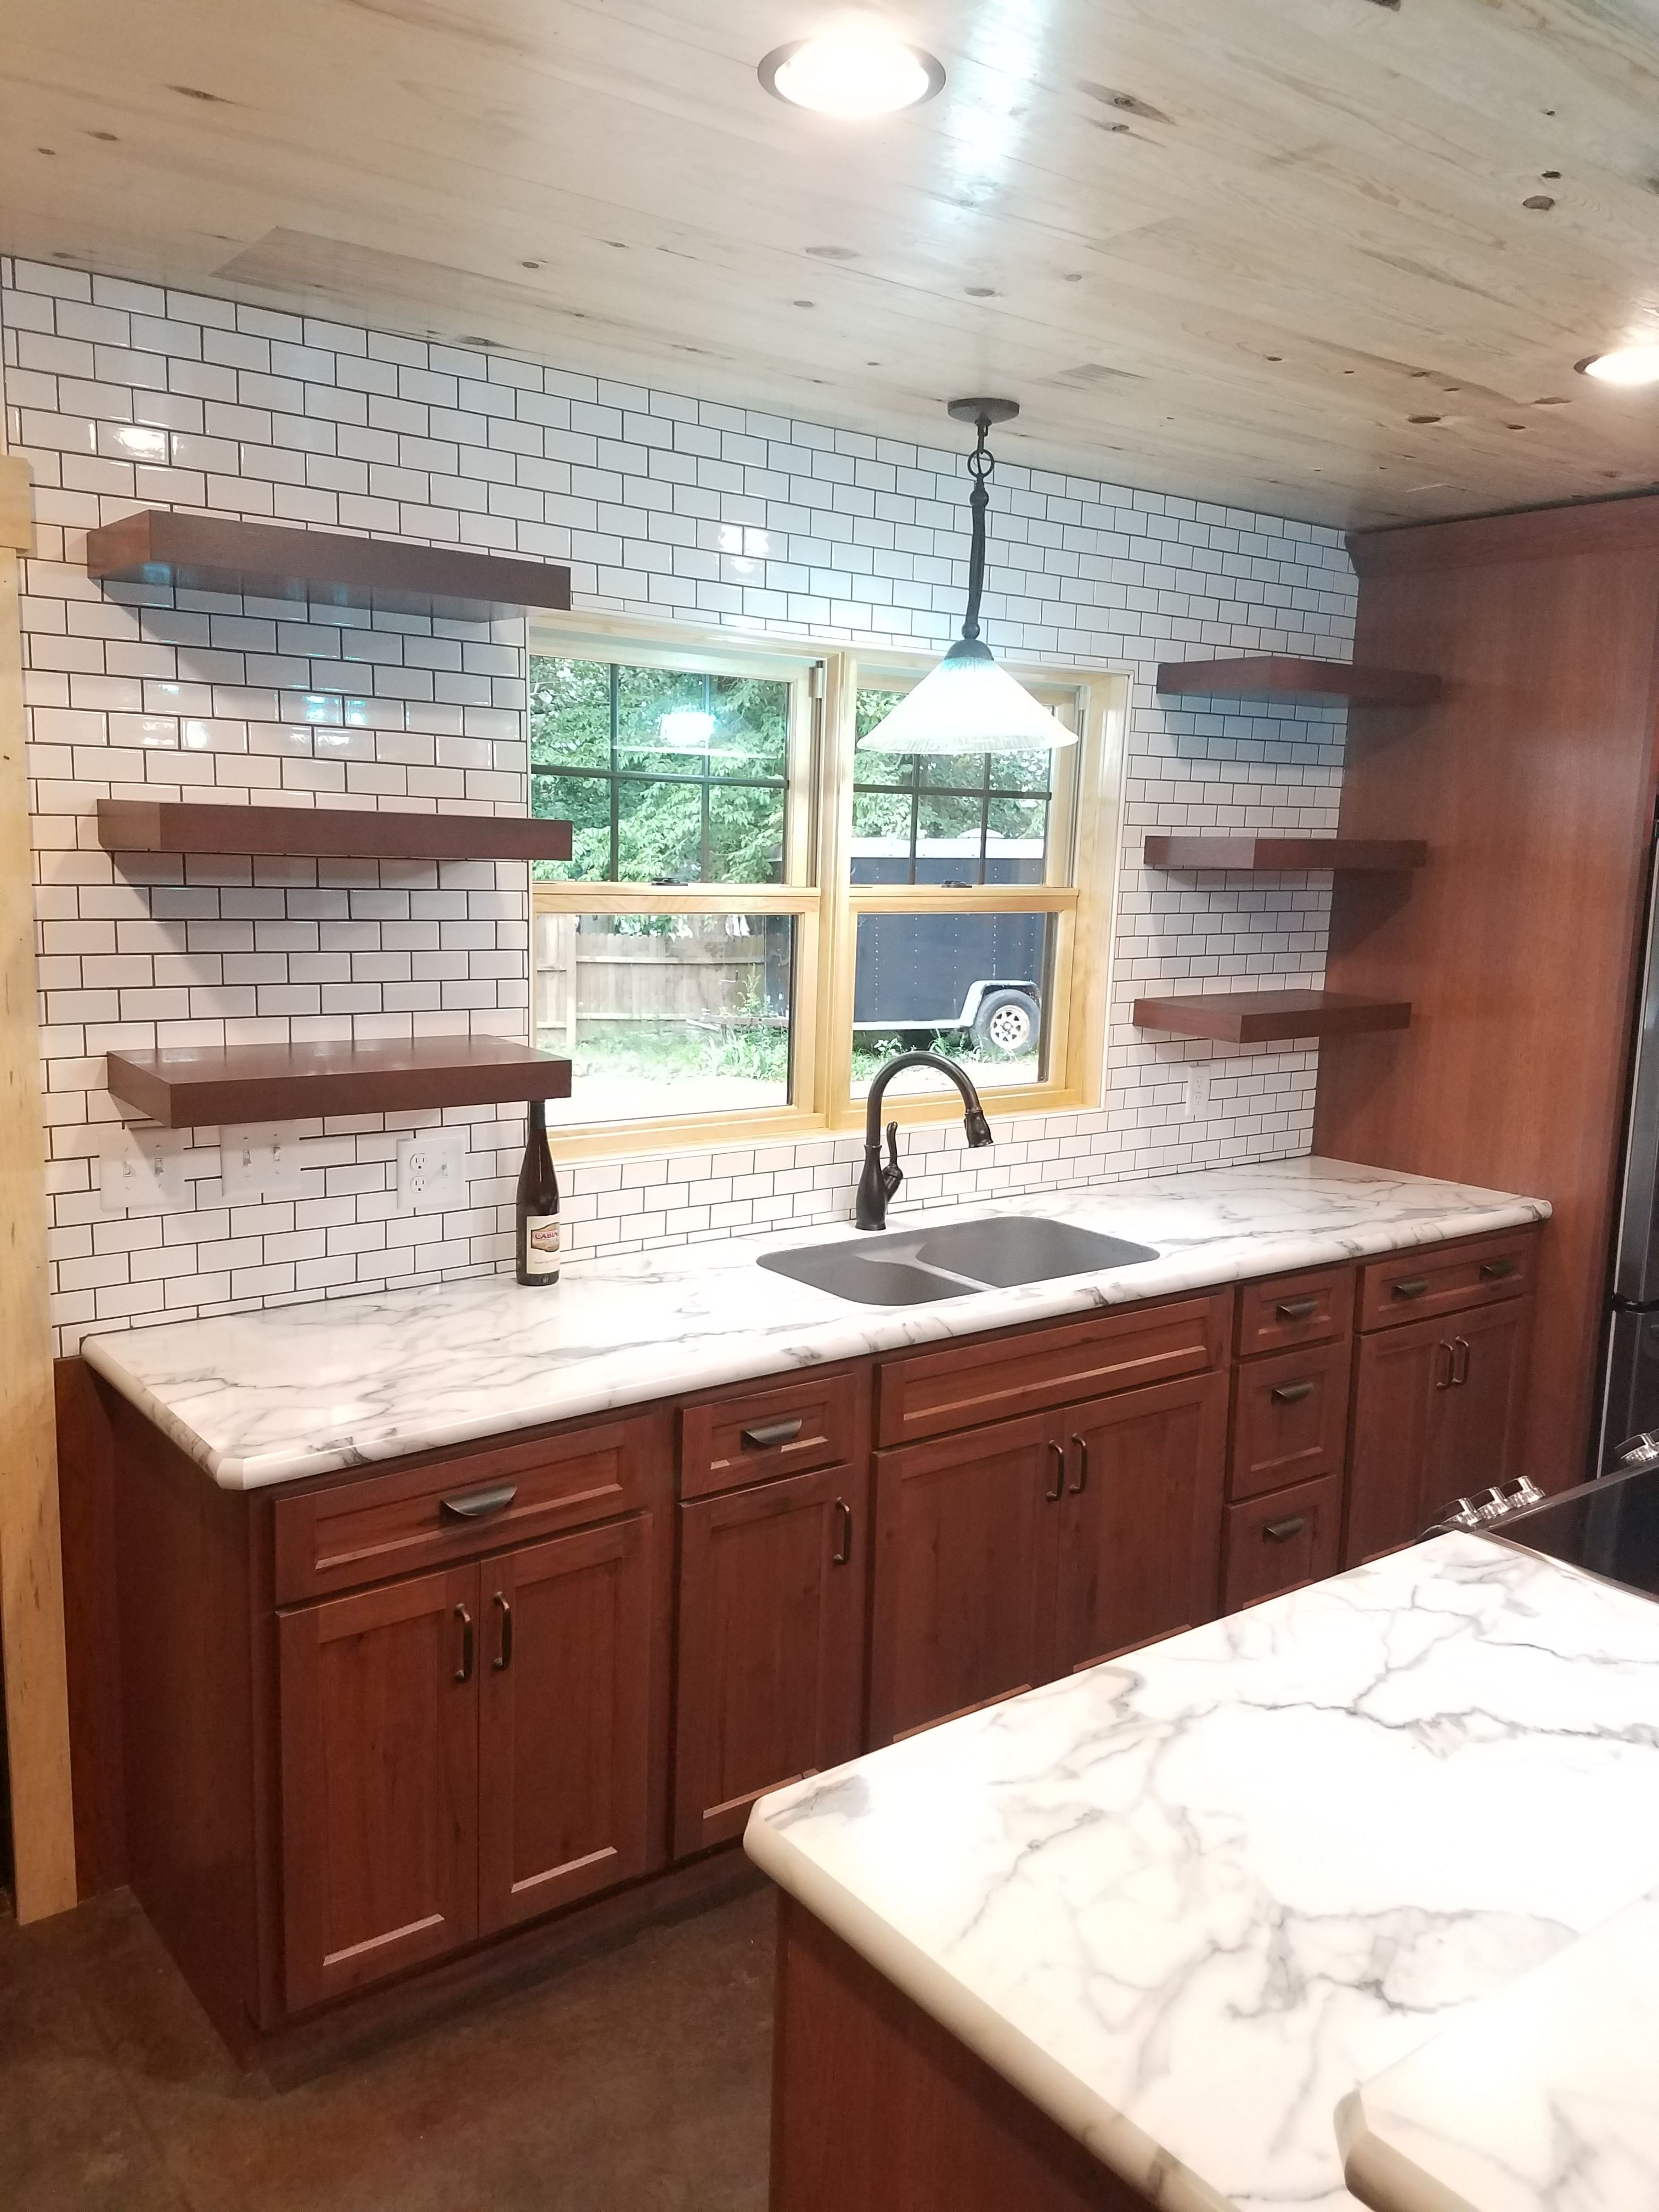 Rustic Hickory Cabinets with a \